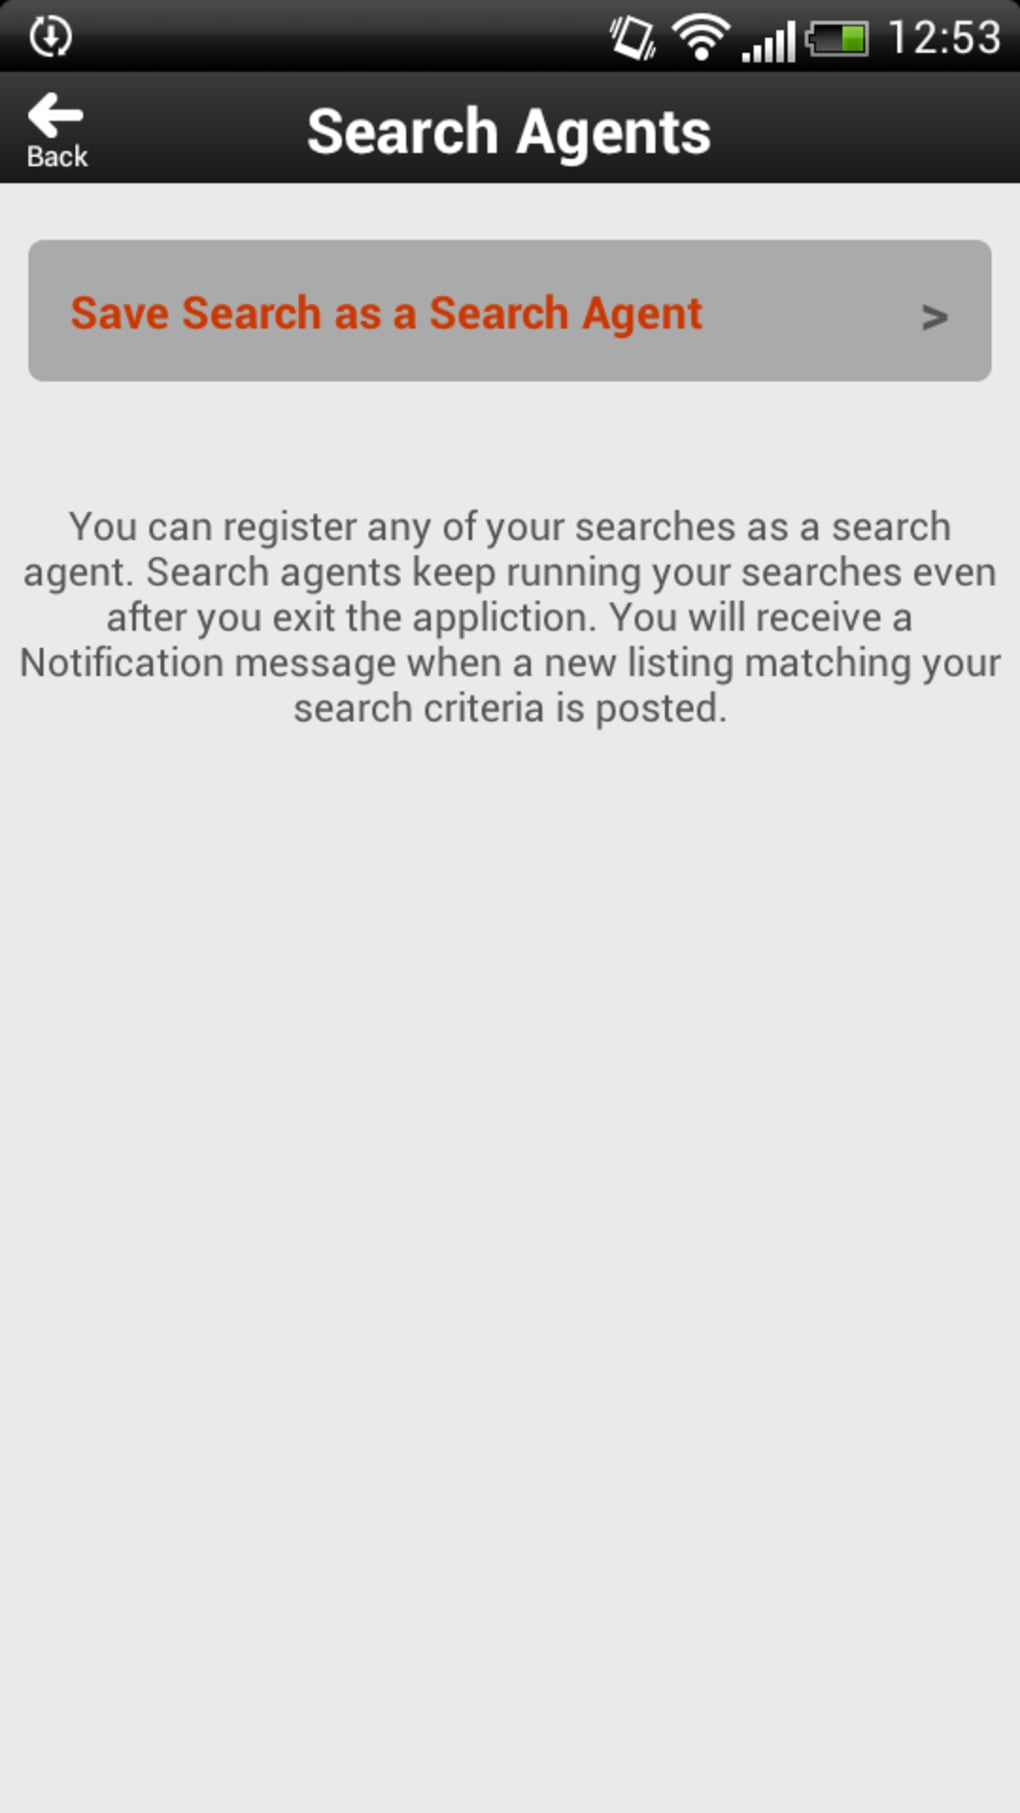 c•PRO craigslist Client Droid for Android - Download